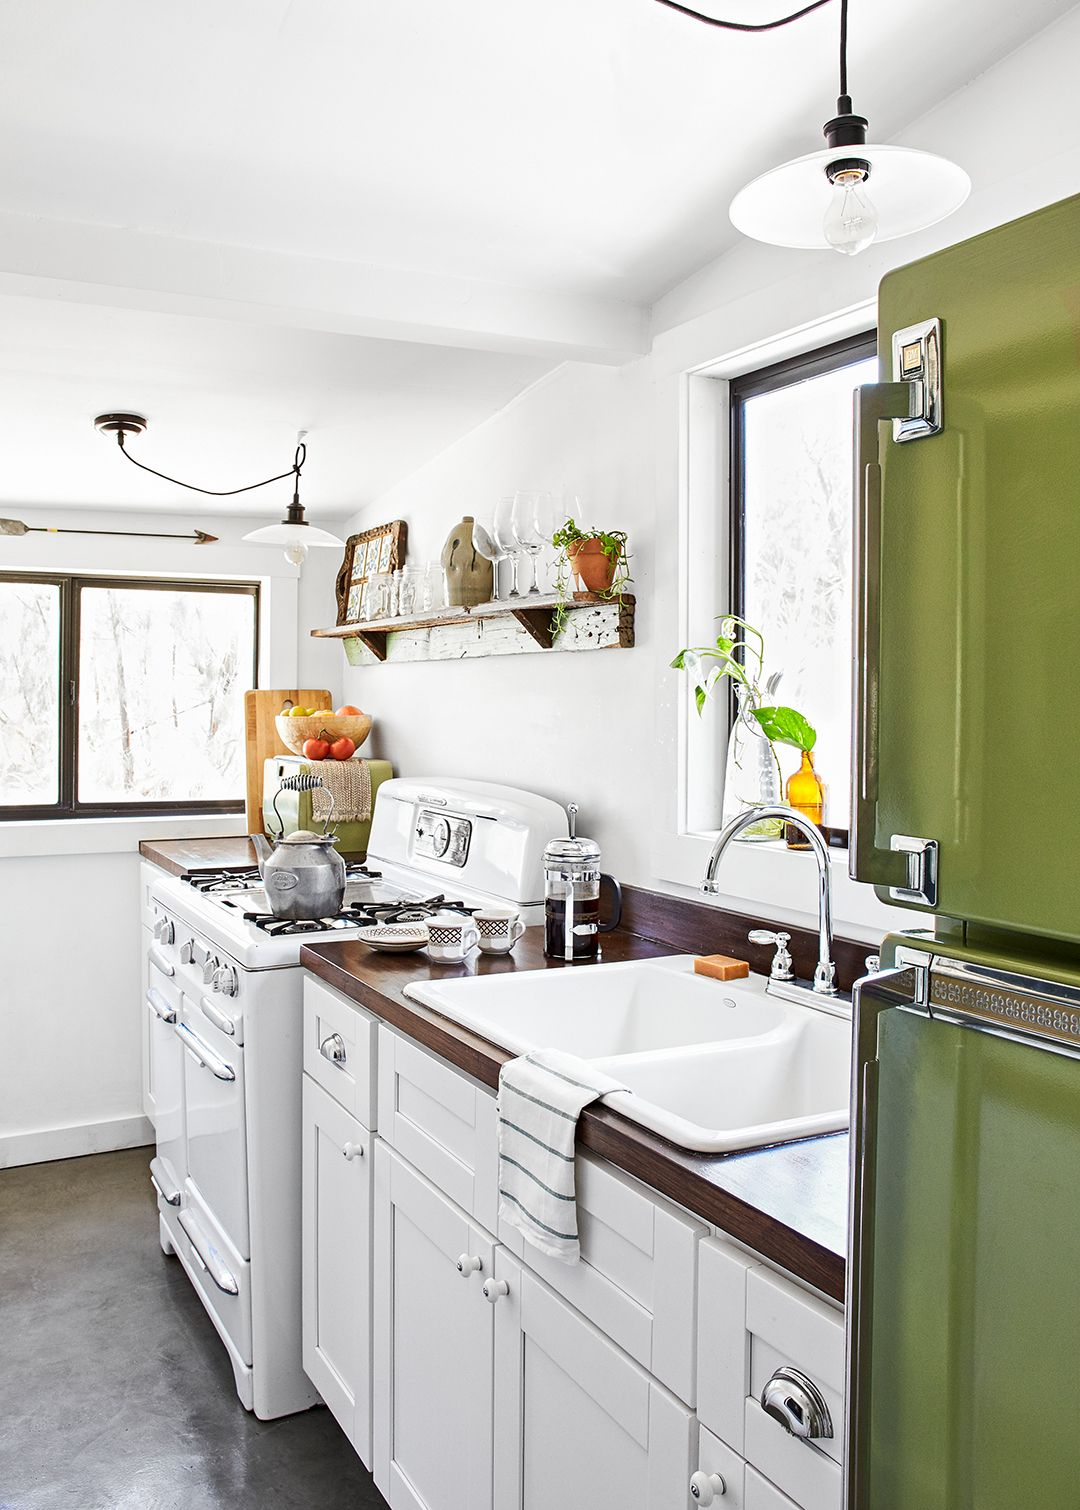 The Top 25 Kitchen Color Schemes for a Look You'll Love